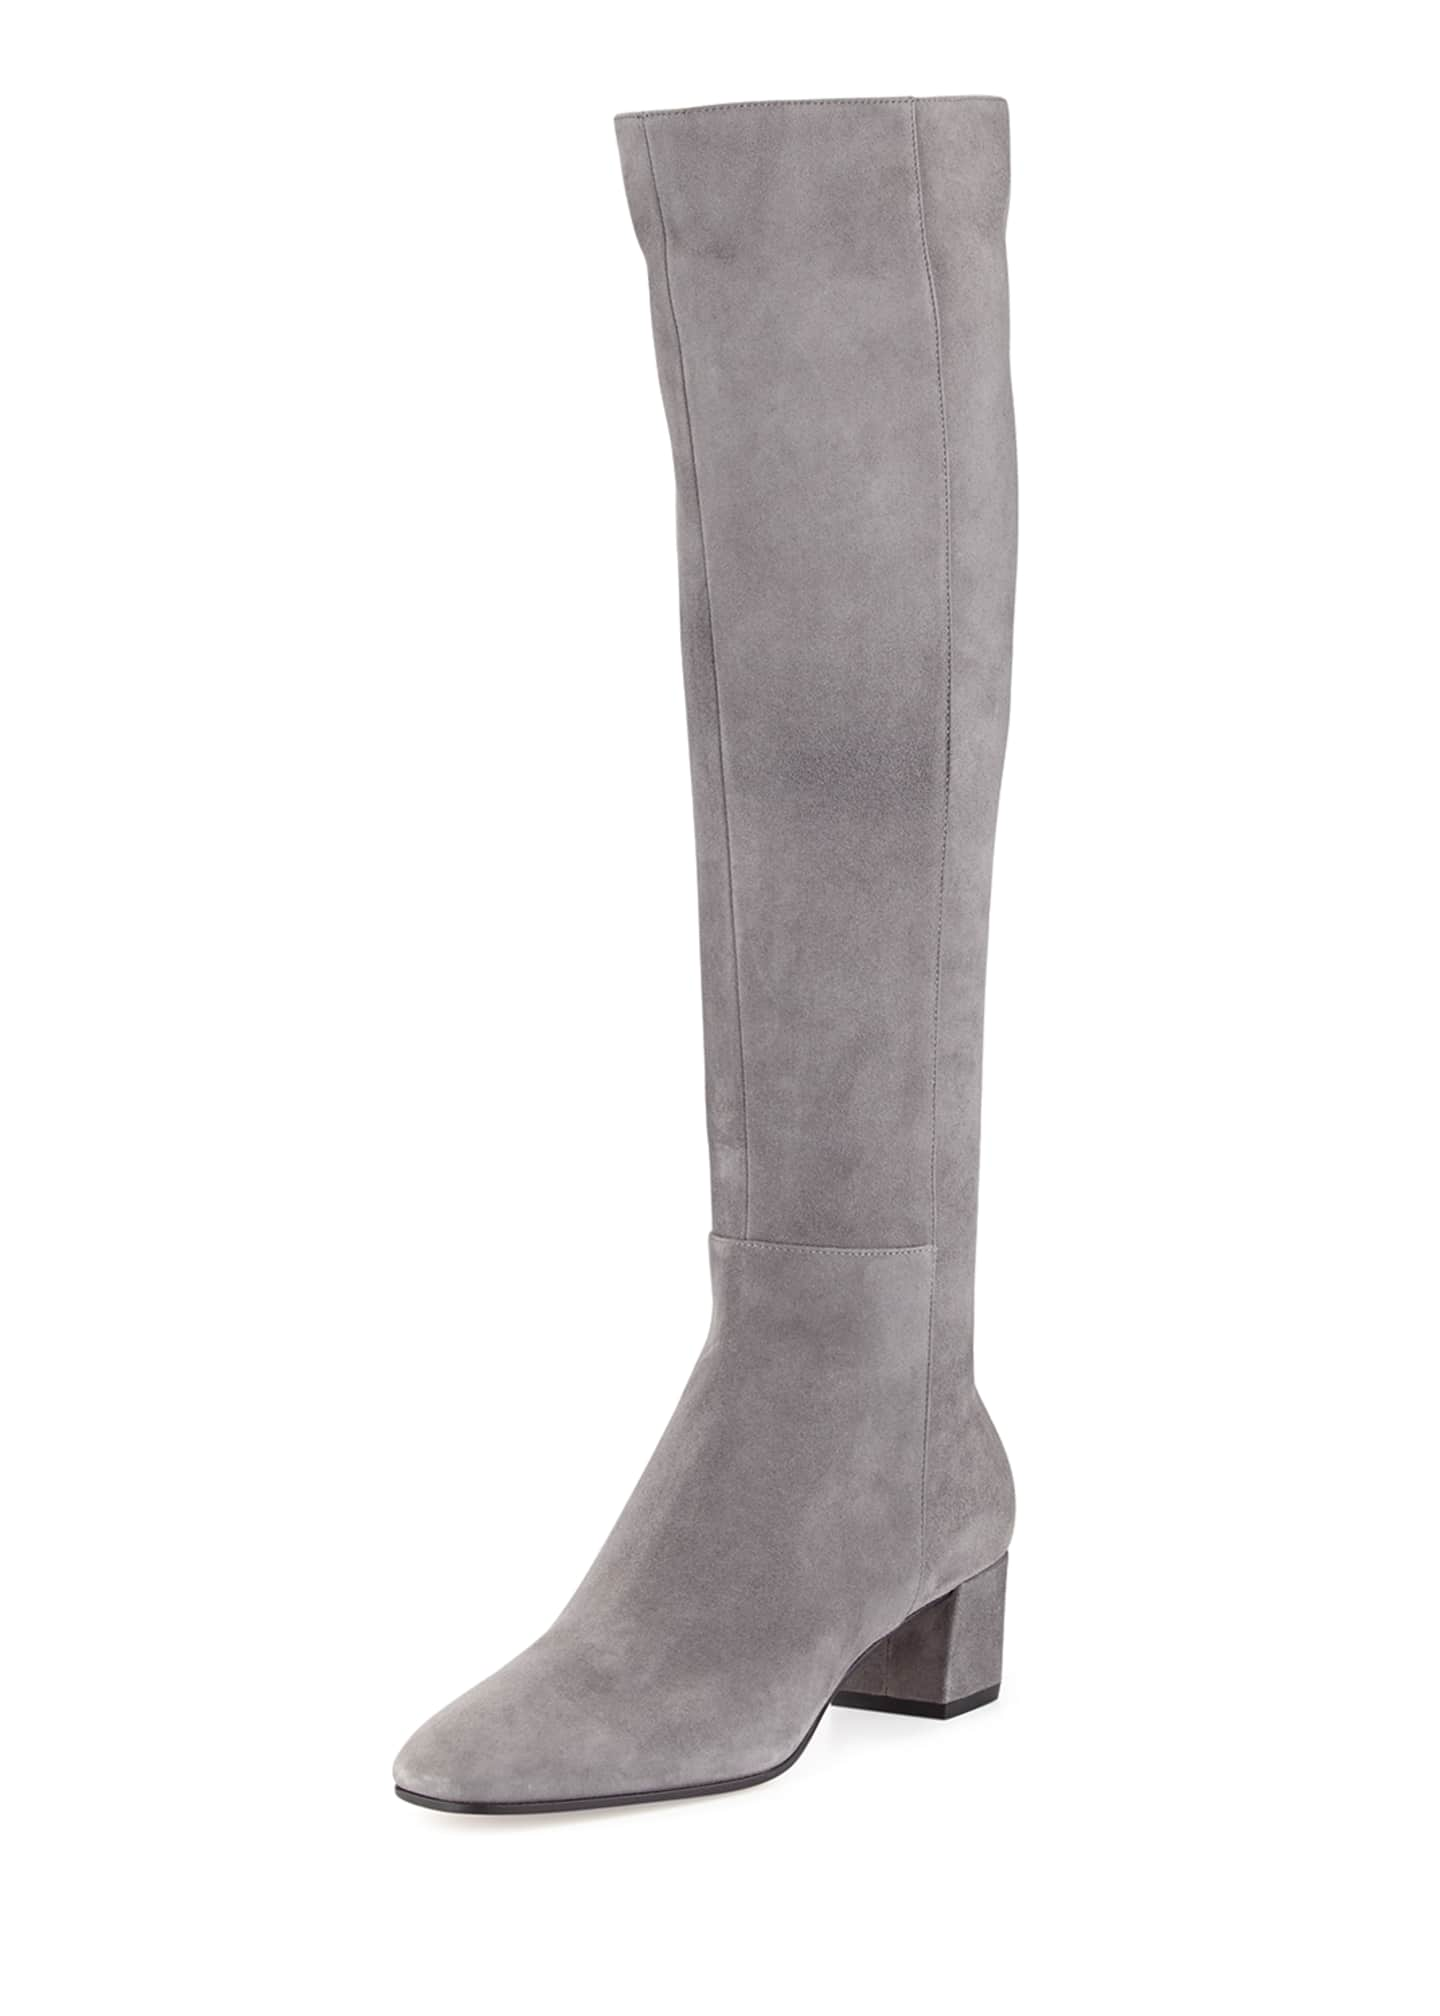 Gianvito Rossi Low-Heel Suede Knee Boots